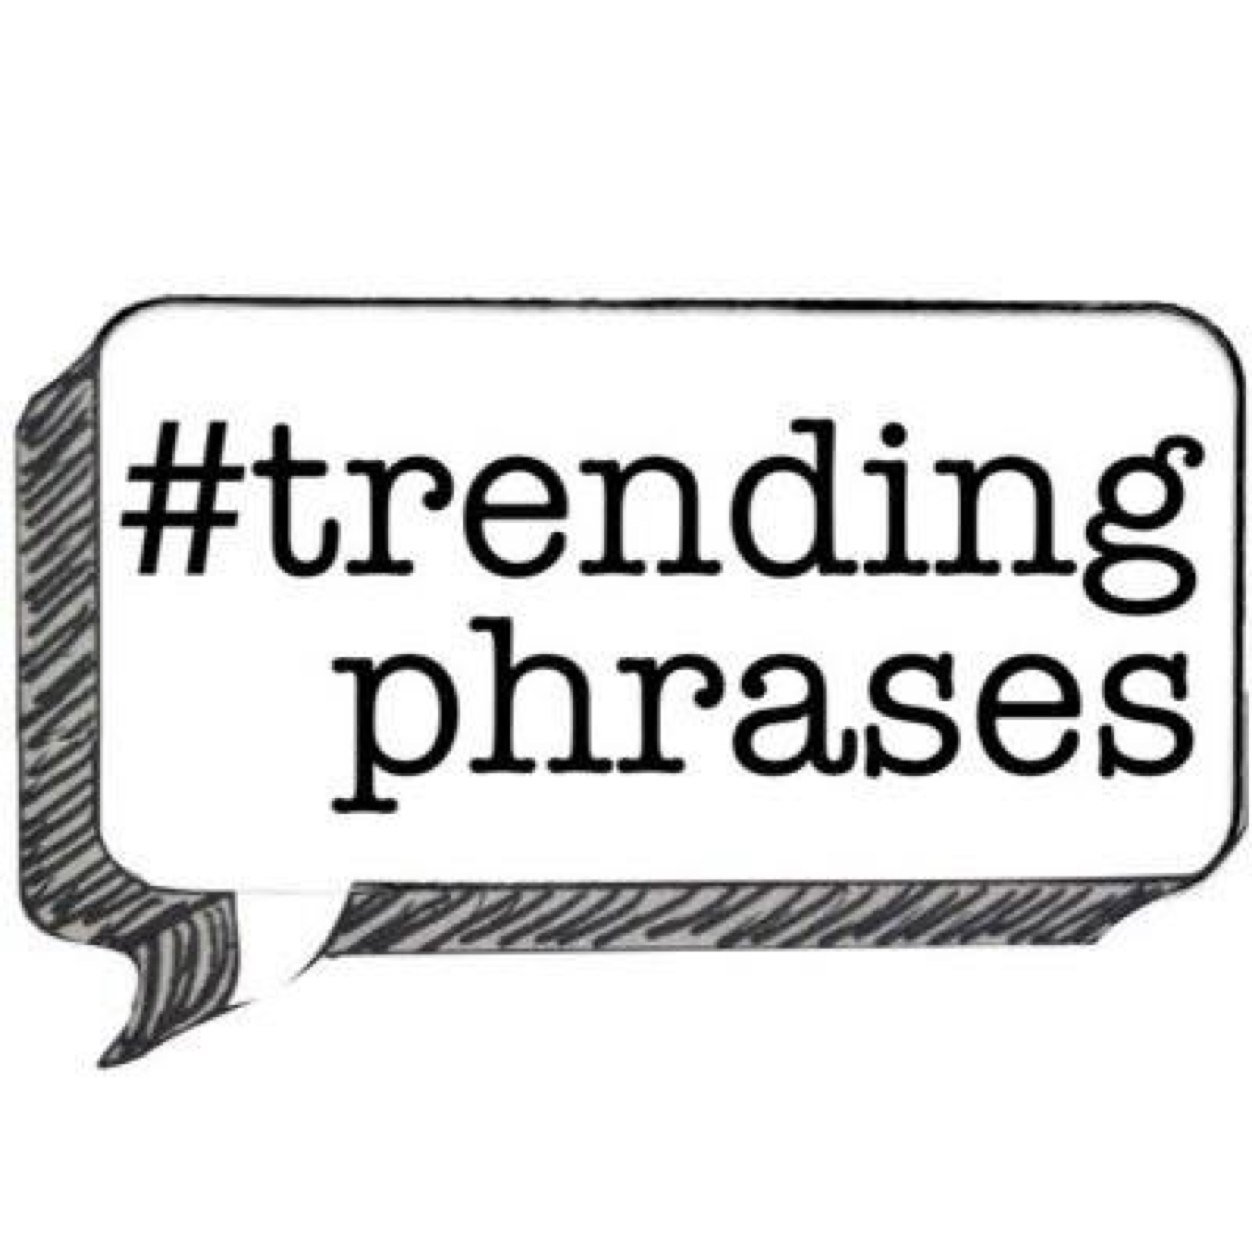 twitter how to search a phrase